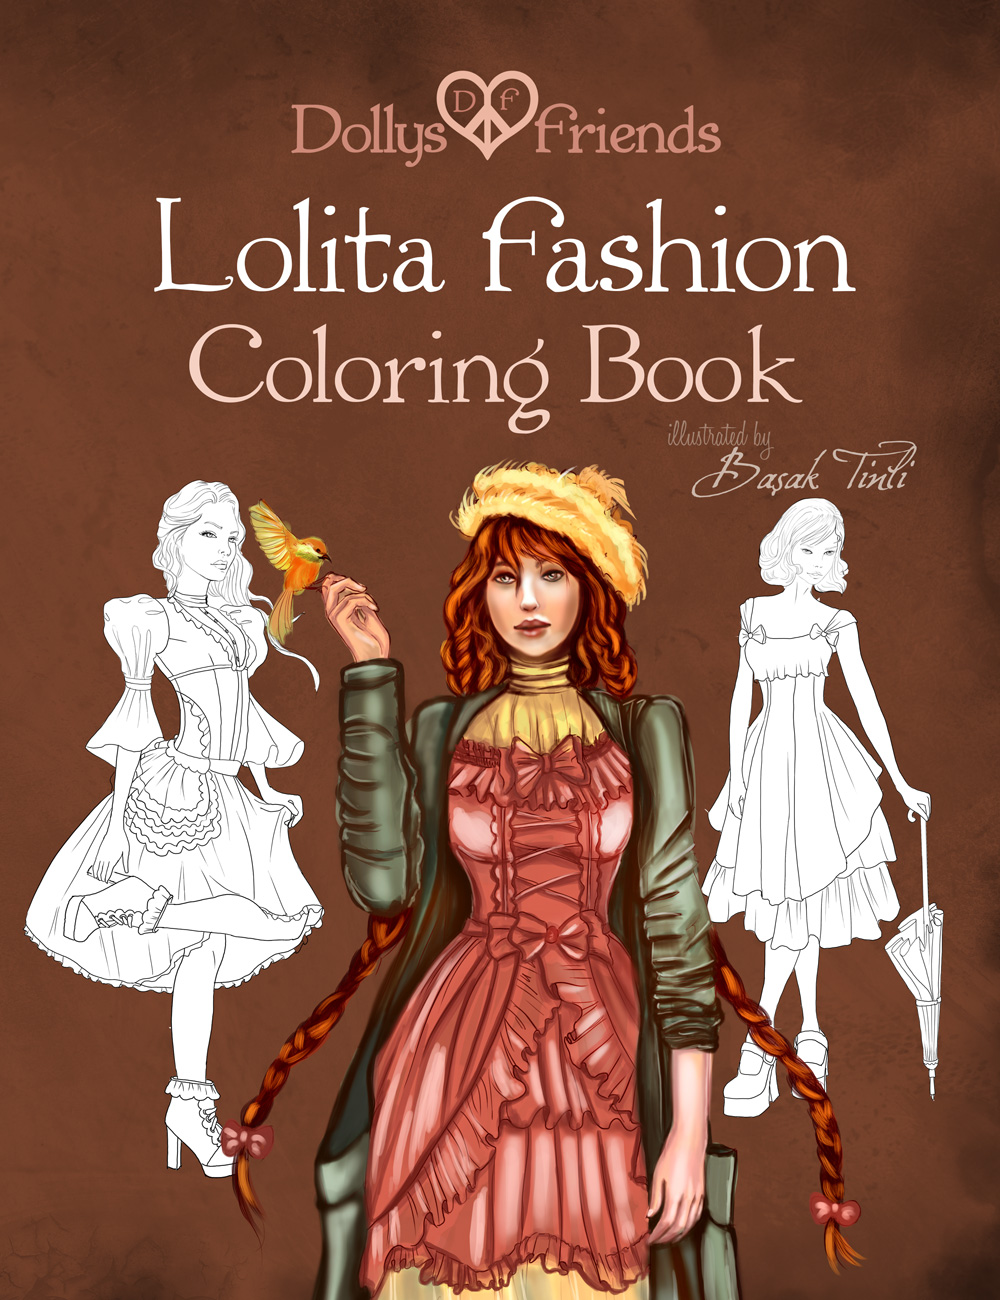 Fashion Book Cover Results ~ Lolita fashion coloring book cover by basaktinli on deviantart